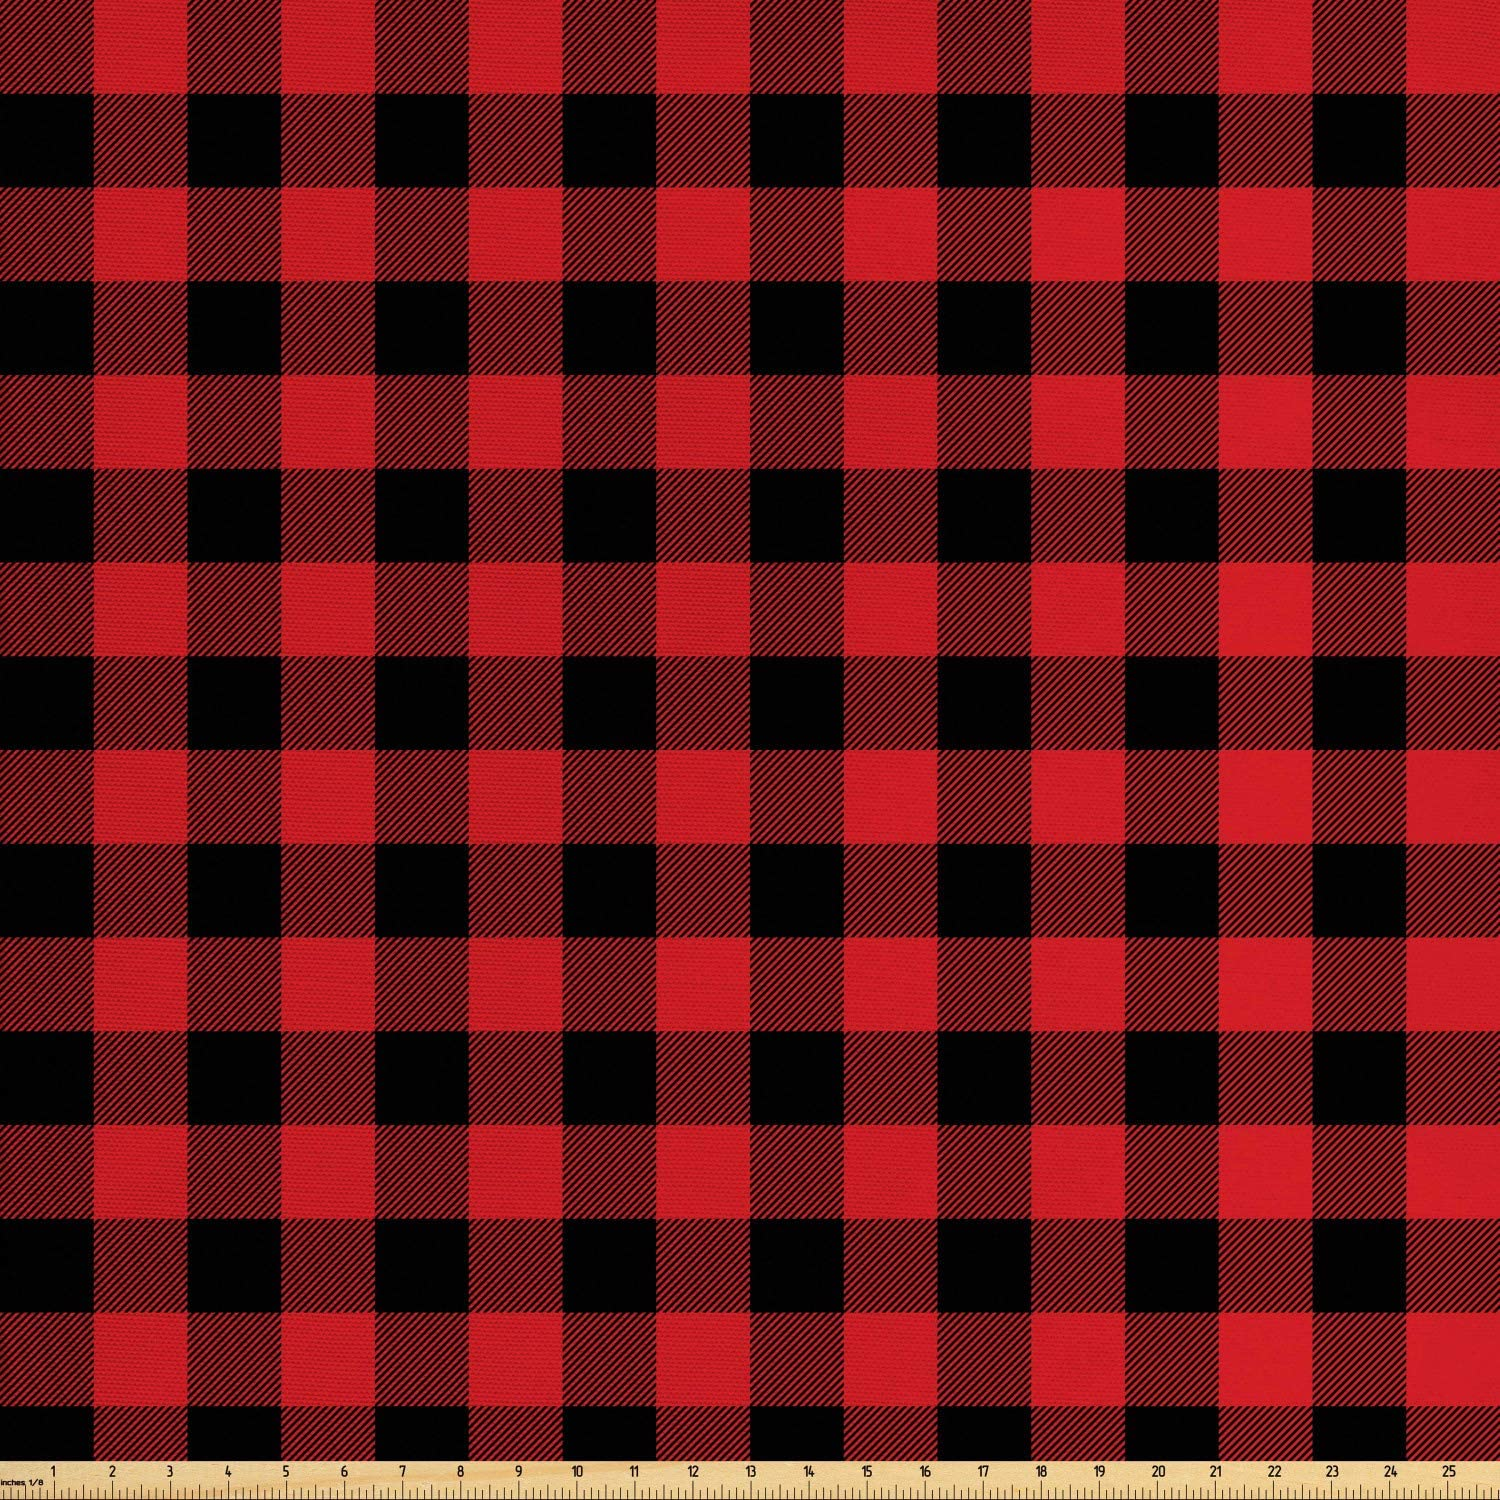 Ambesonne Plaid Fabric by The Yard, Lumberjack Fashion Buffalo Style Checks Pattern Retro Style with Grid Composition, Decorative Fabric for Upholstery and Home Accents, 1 Yard, Orange Black